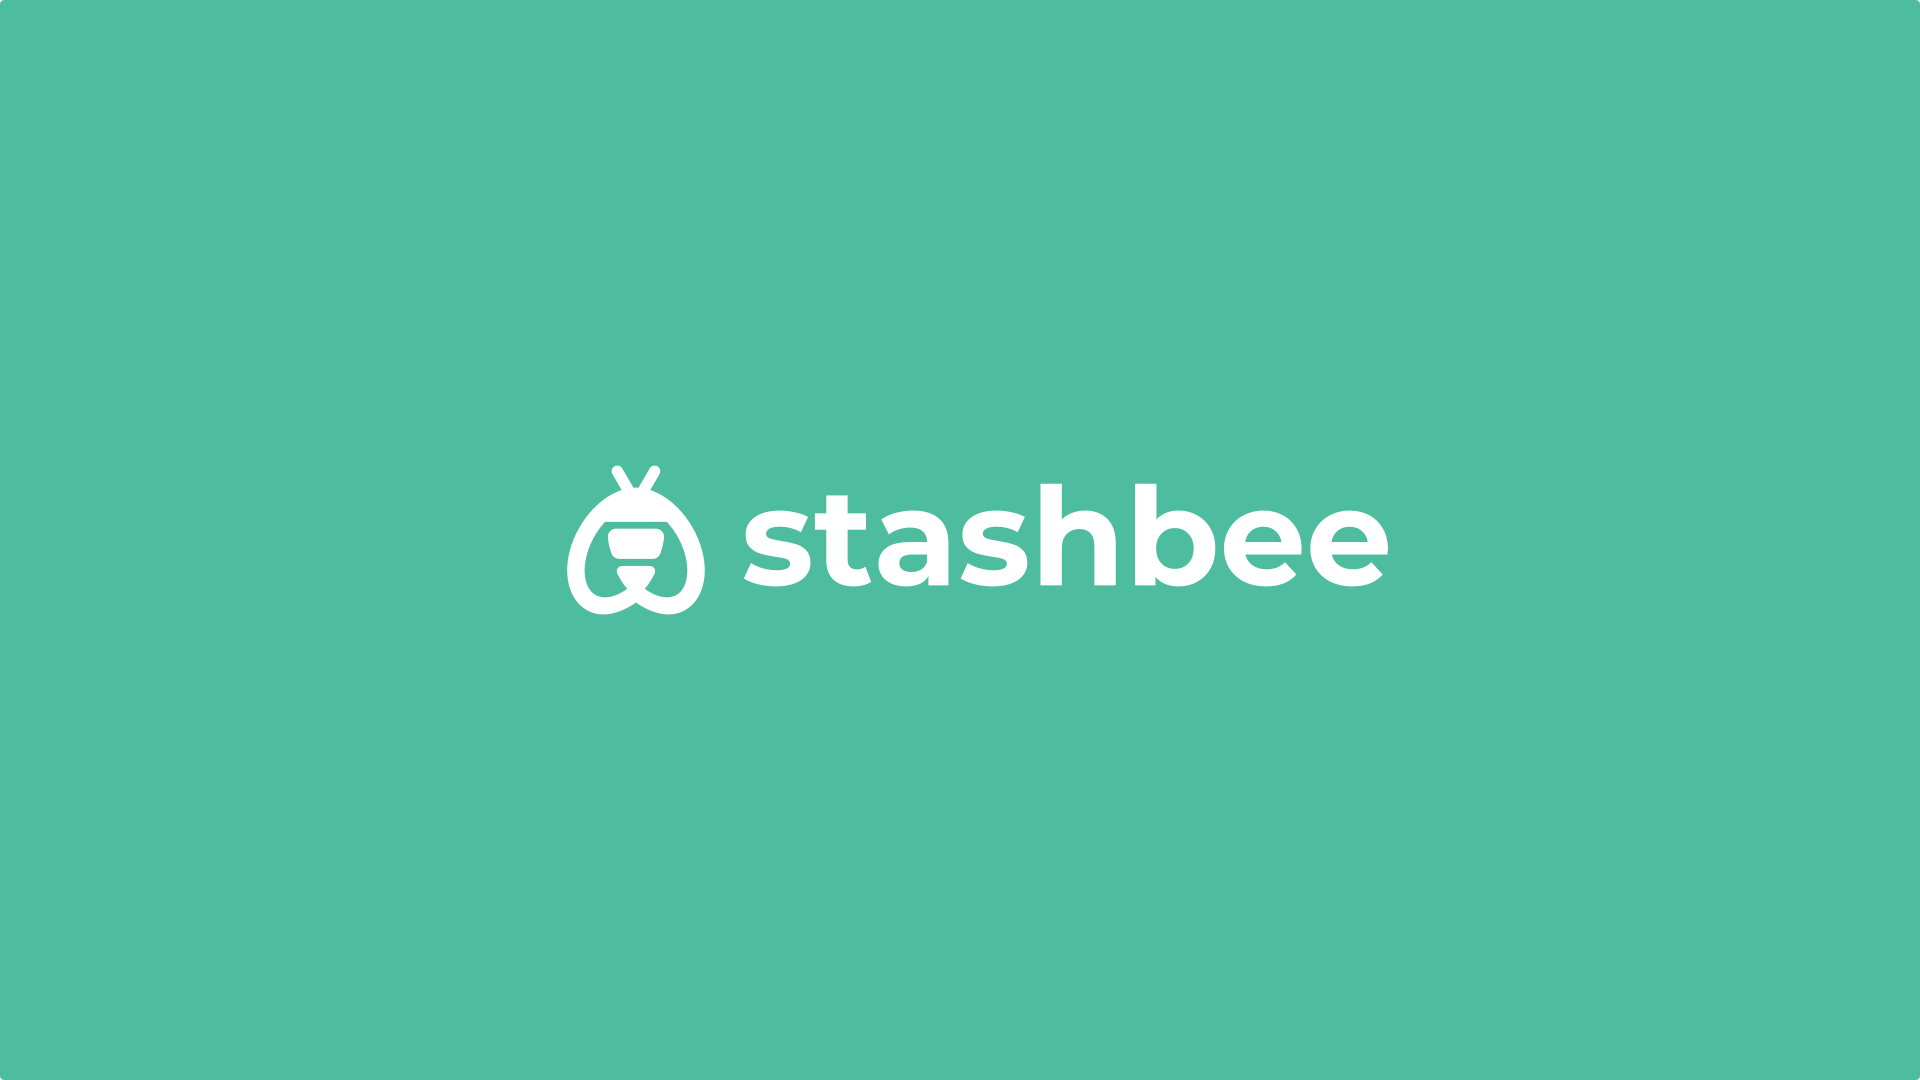 stashbee referral code refer a friend link